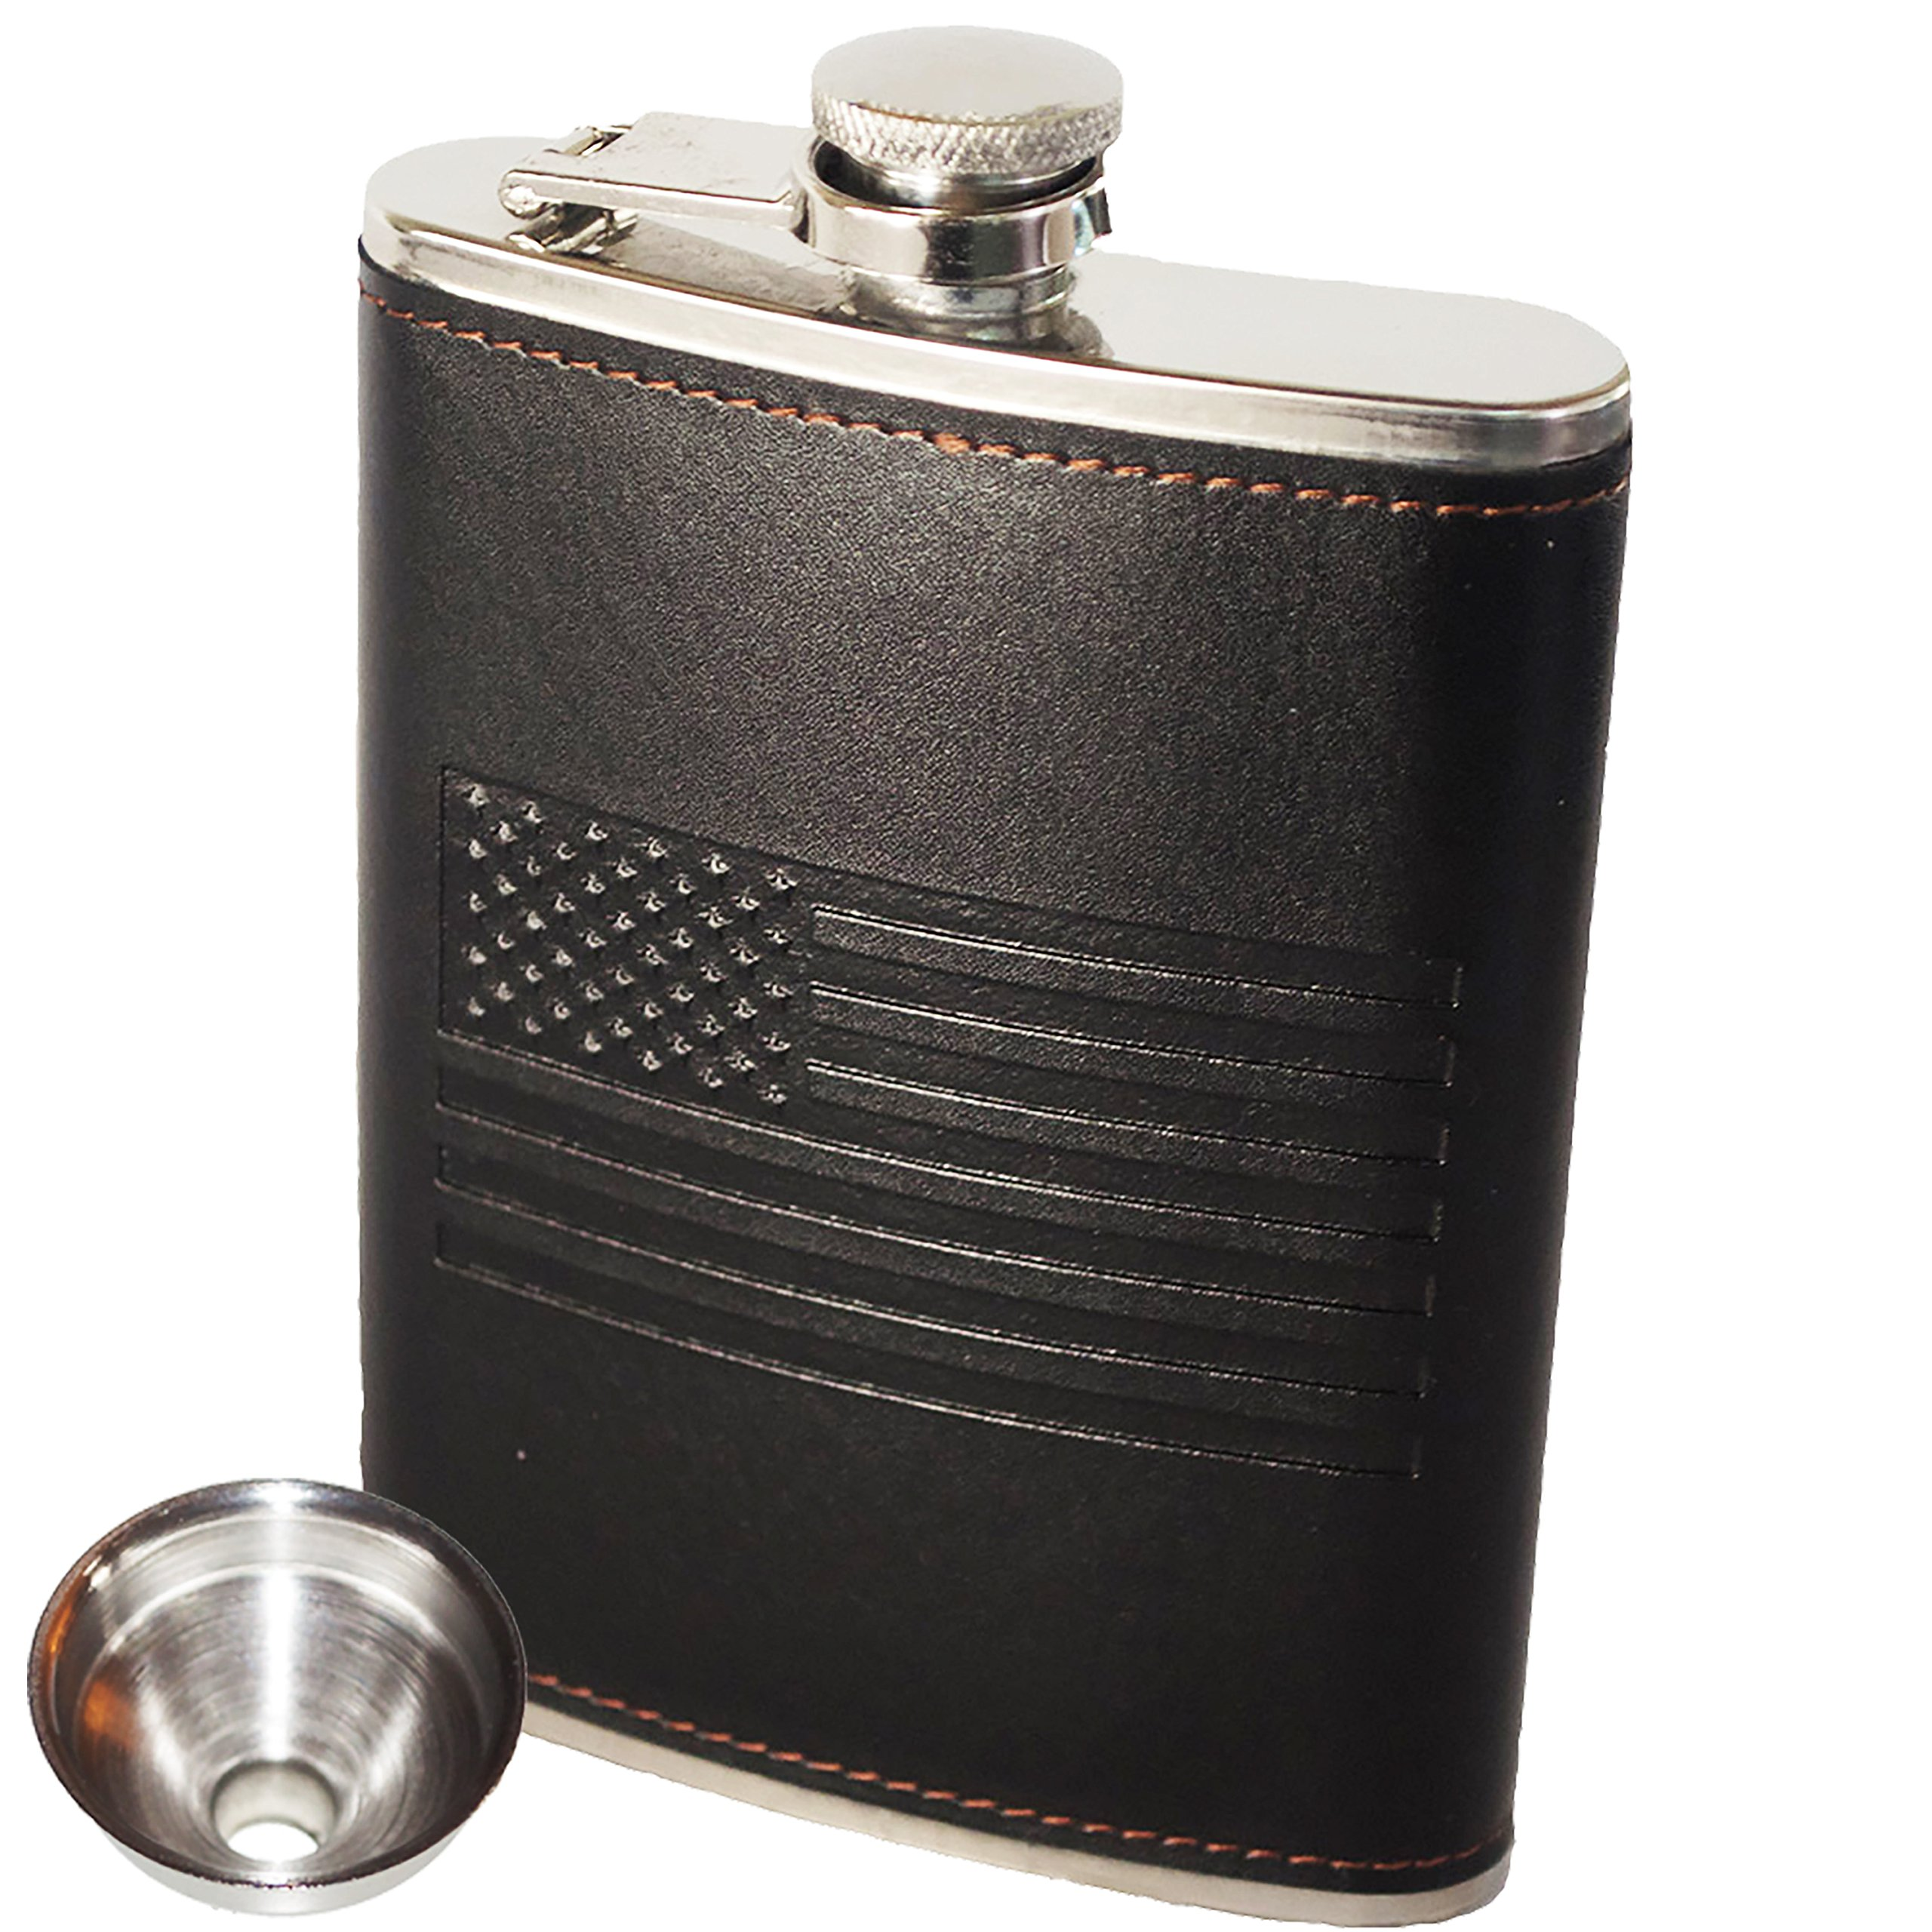 American Flag Flask - Soft Touch Cover and Durable Construction | 18/8 304 Food Grade Stainless Steel | Leak Proof Slim Profile Classic American Flag Design | Funnel Included | Black